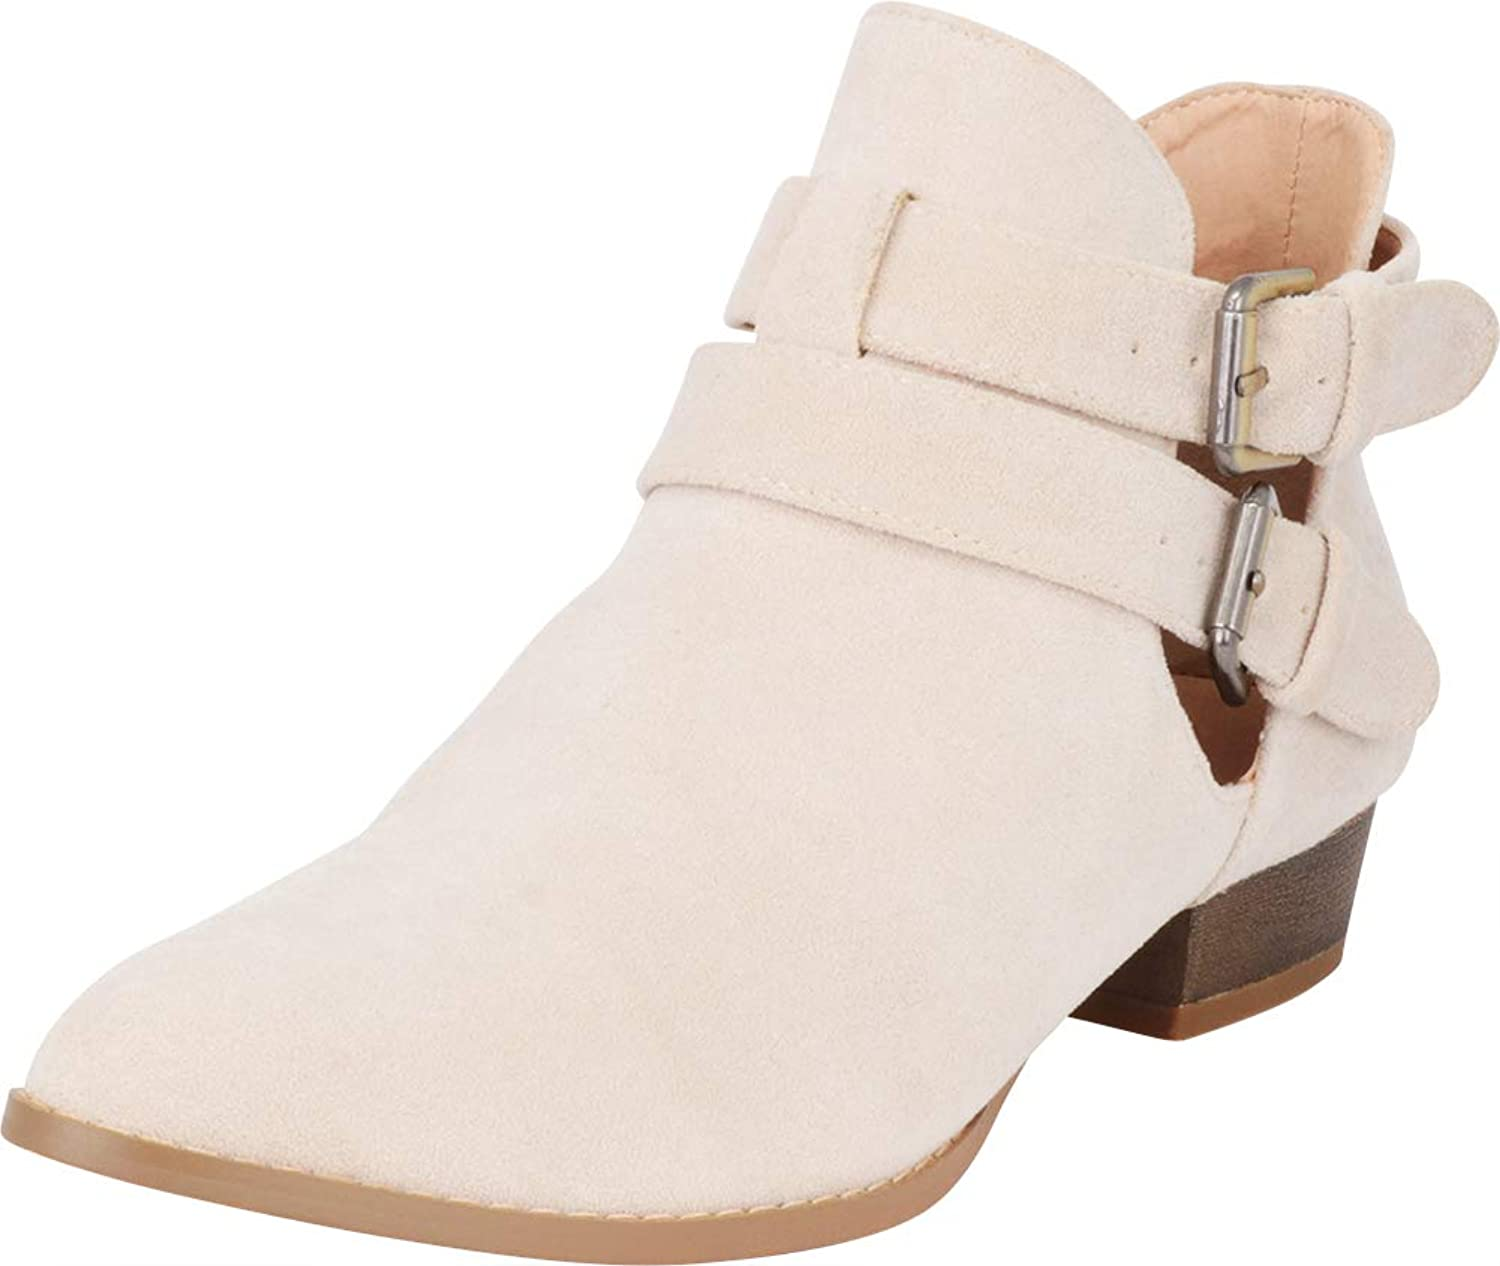 Cambridge Select Women's Western Pointed Toe Cutout Strappy Buckle Low Heel Ankle Bootie